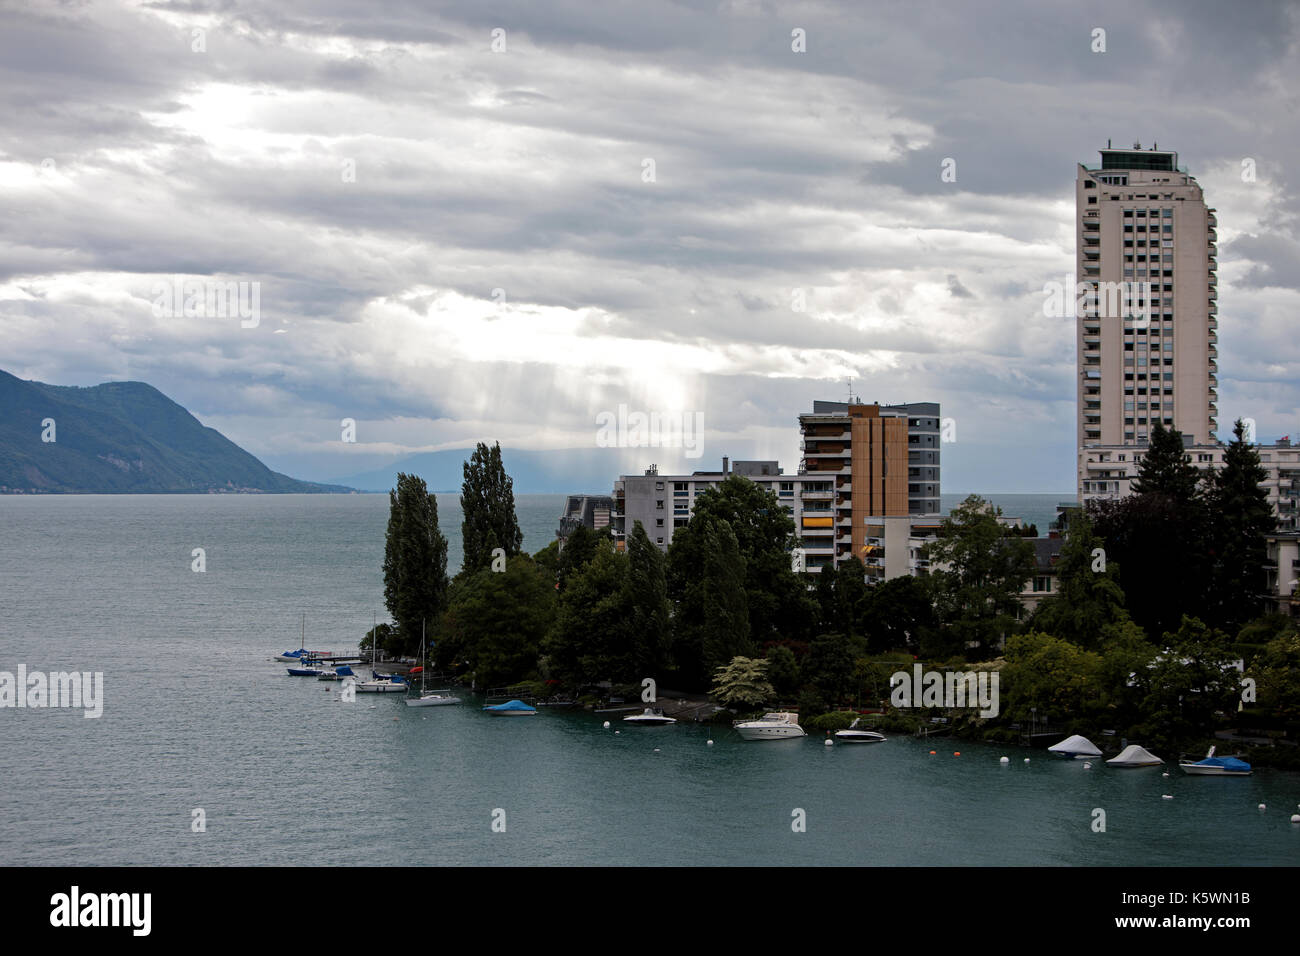 High rise apartment blocks in the center or Montreux on Lake Geneva in Switzerland. Boats and small yachts are moored - Stock Image